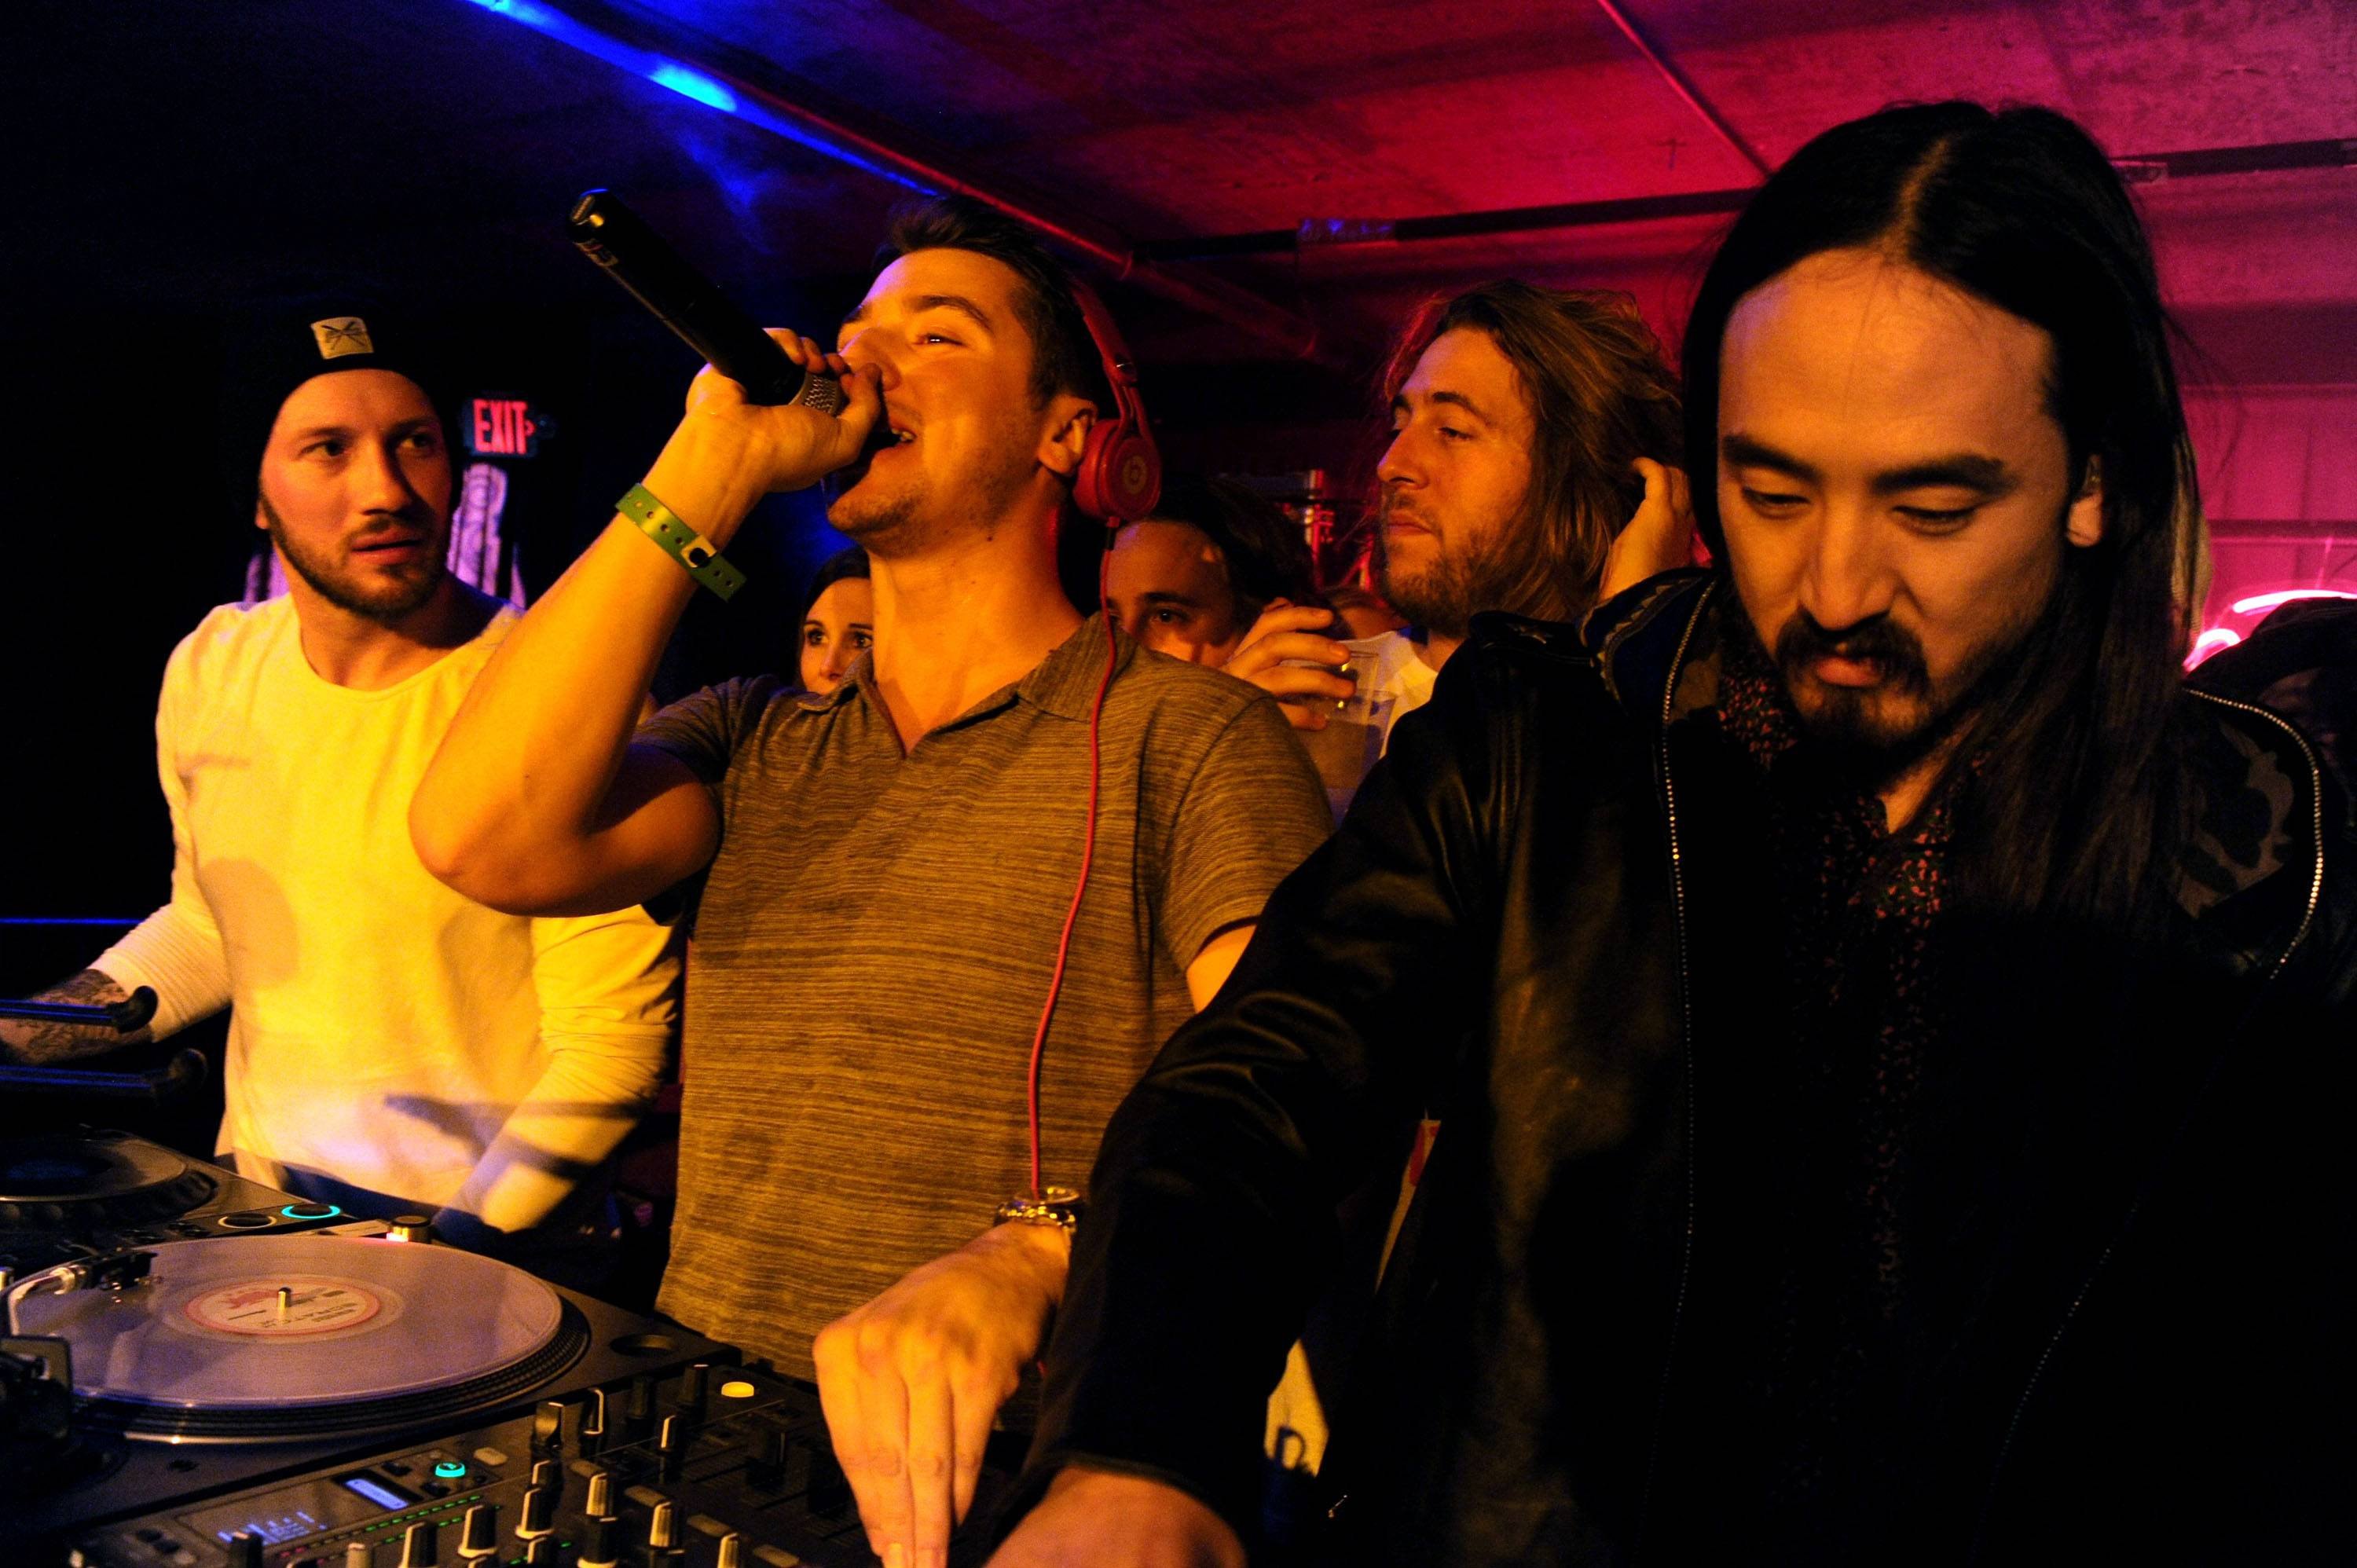 DJ Politik and Steve Aoki getting the crowd pumped up TAO at Village at the Lift Night 4 of Sundance